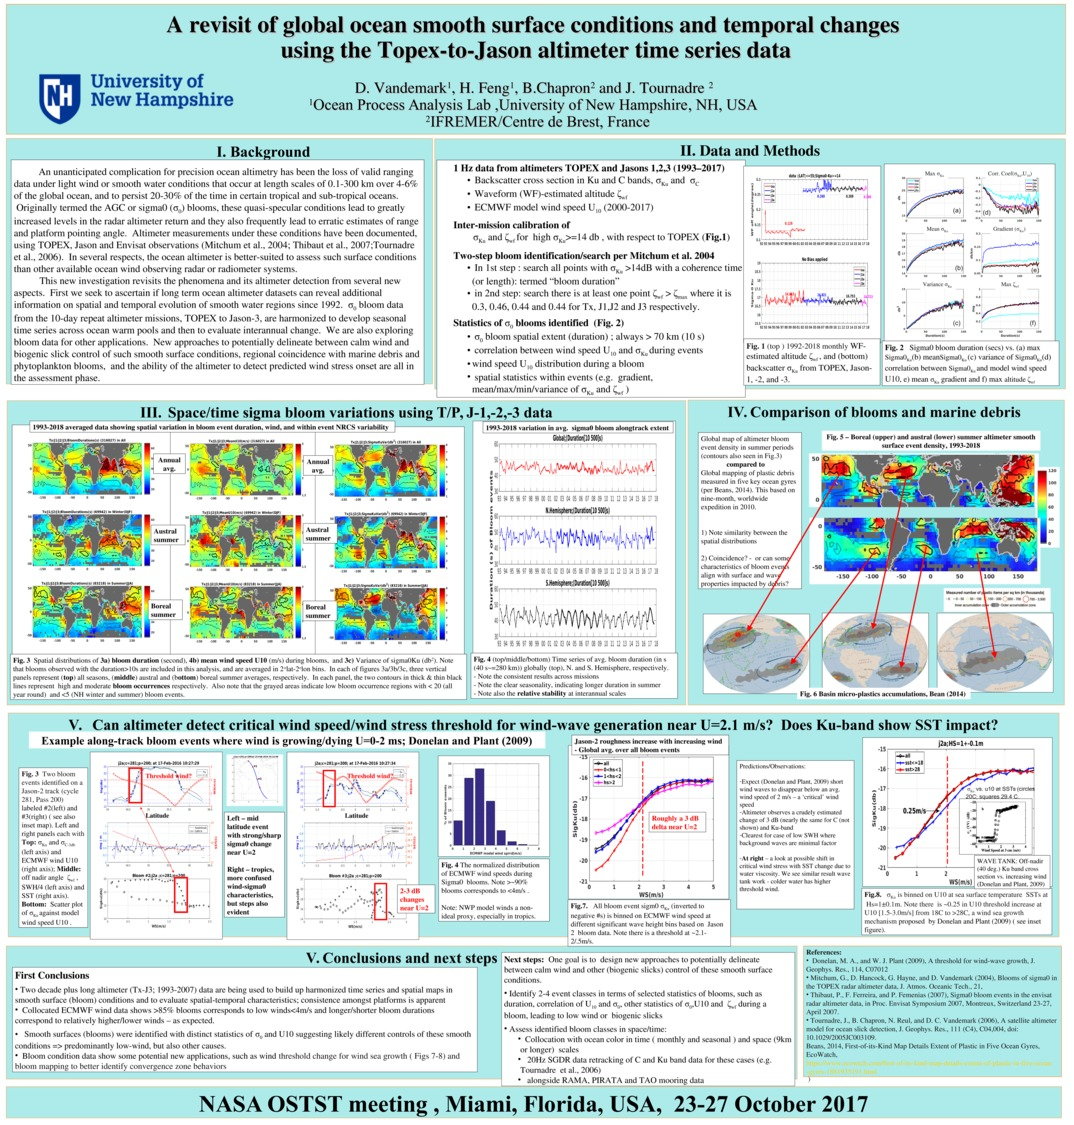 A Revisit Of Global Ocean Smooth Surface Conditions And Temporal Changes  by hfengg